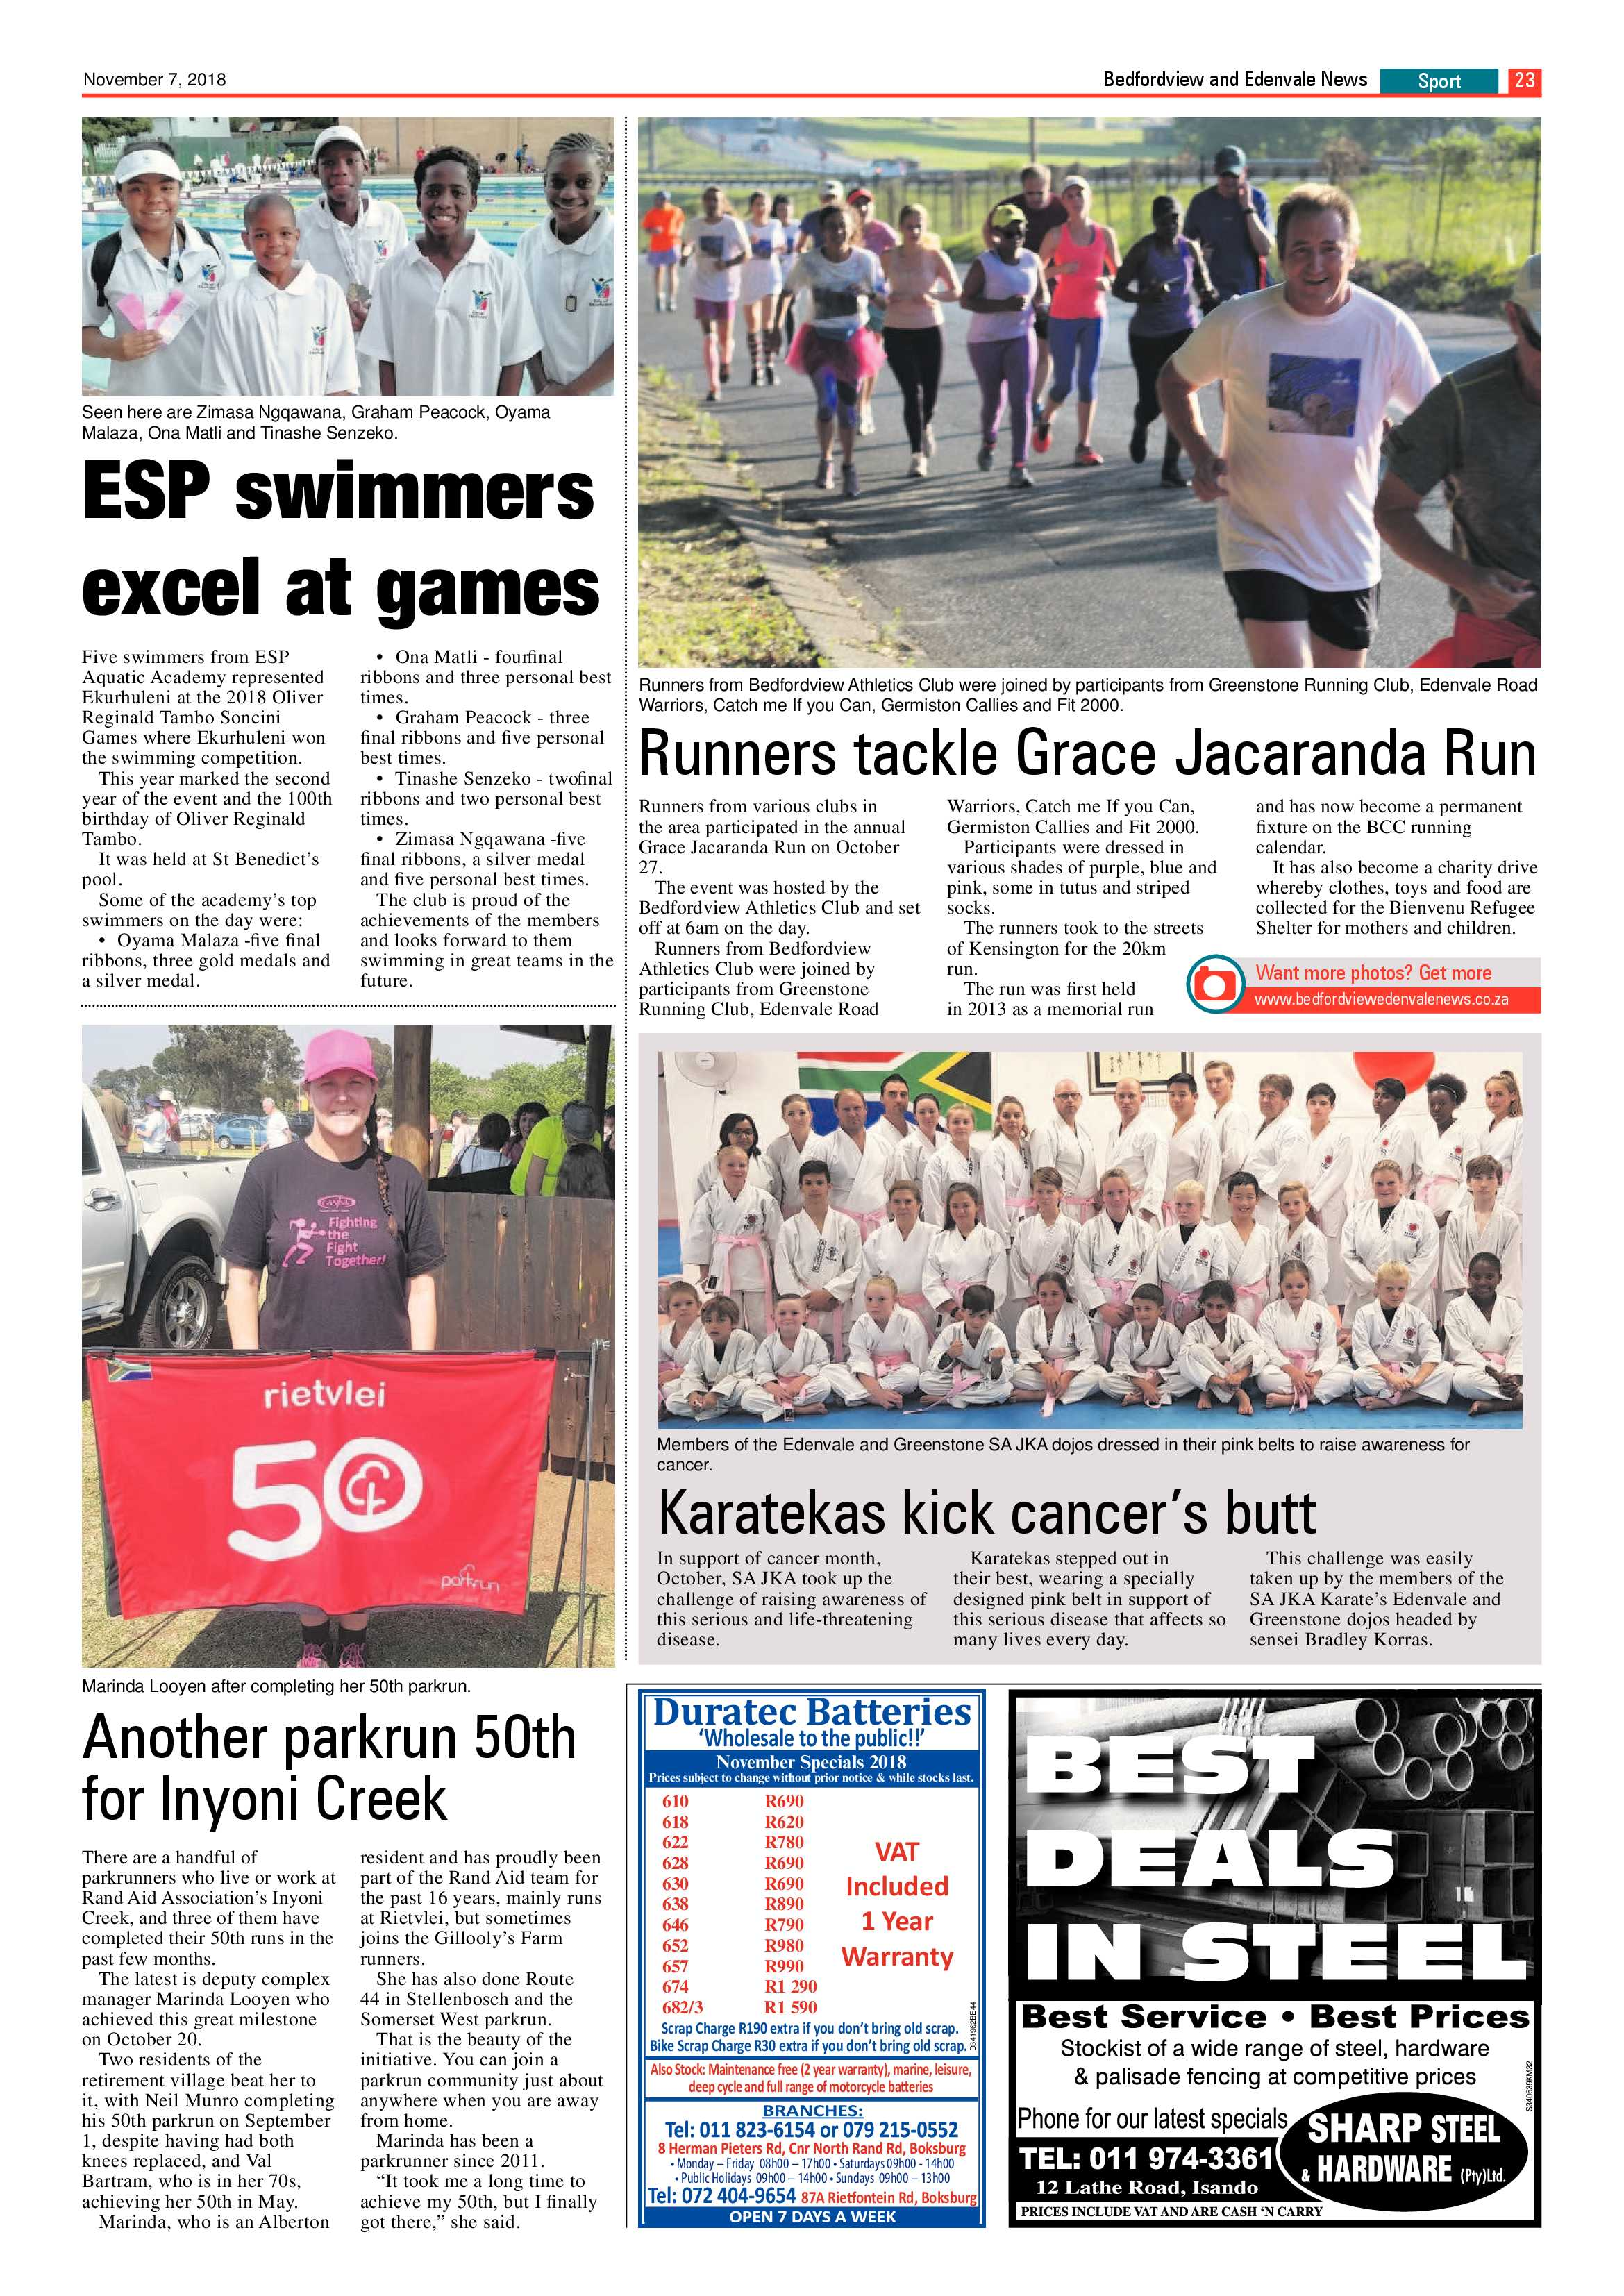 bedfordview-edenvale-news-07-november-2018-epapers-page-23